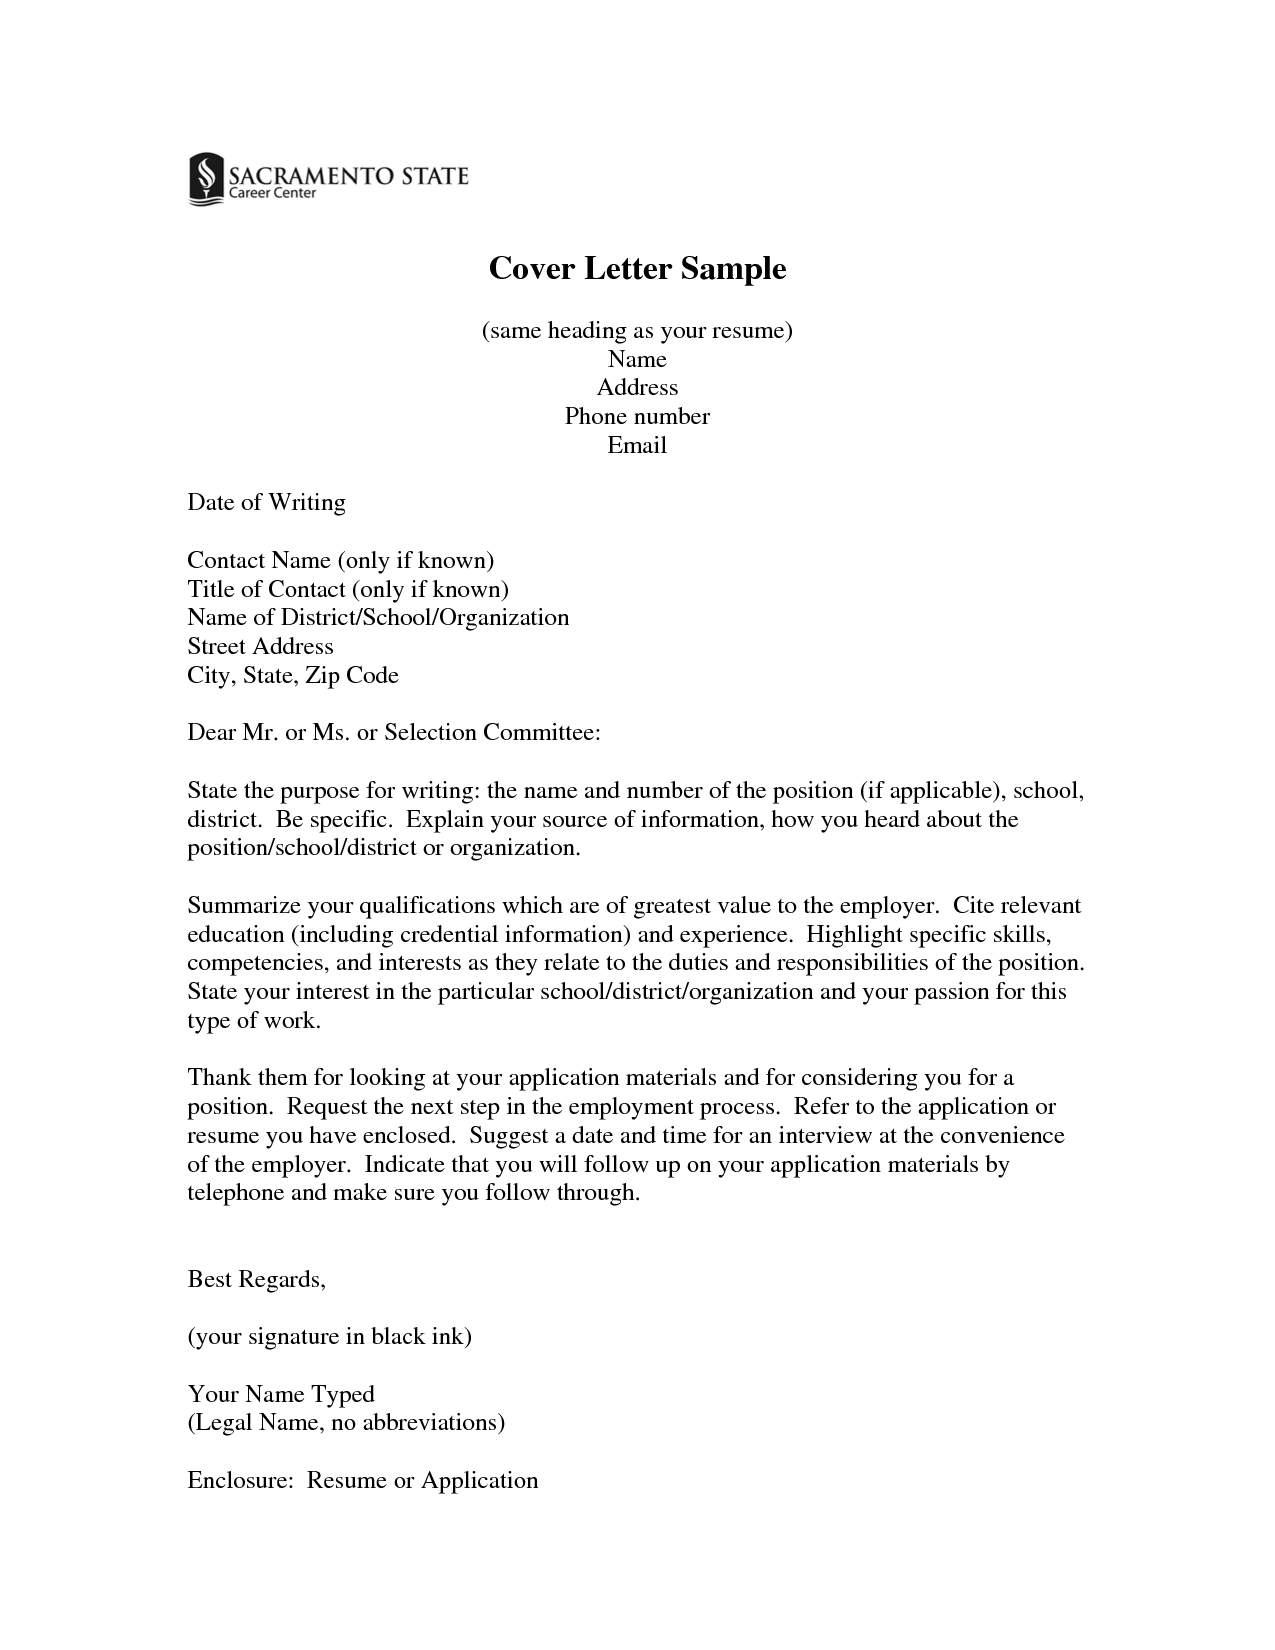 Same Cover Letters For Resume | Cover Letter Sample Same Heading As Your  Resume Name Address  Example Of Resume Cover Letters